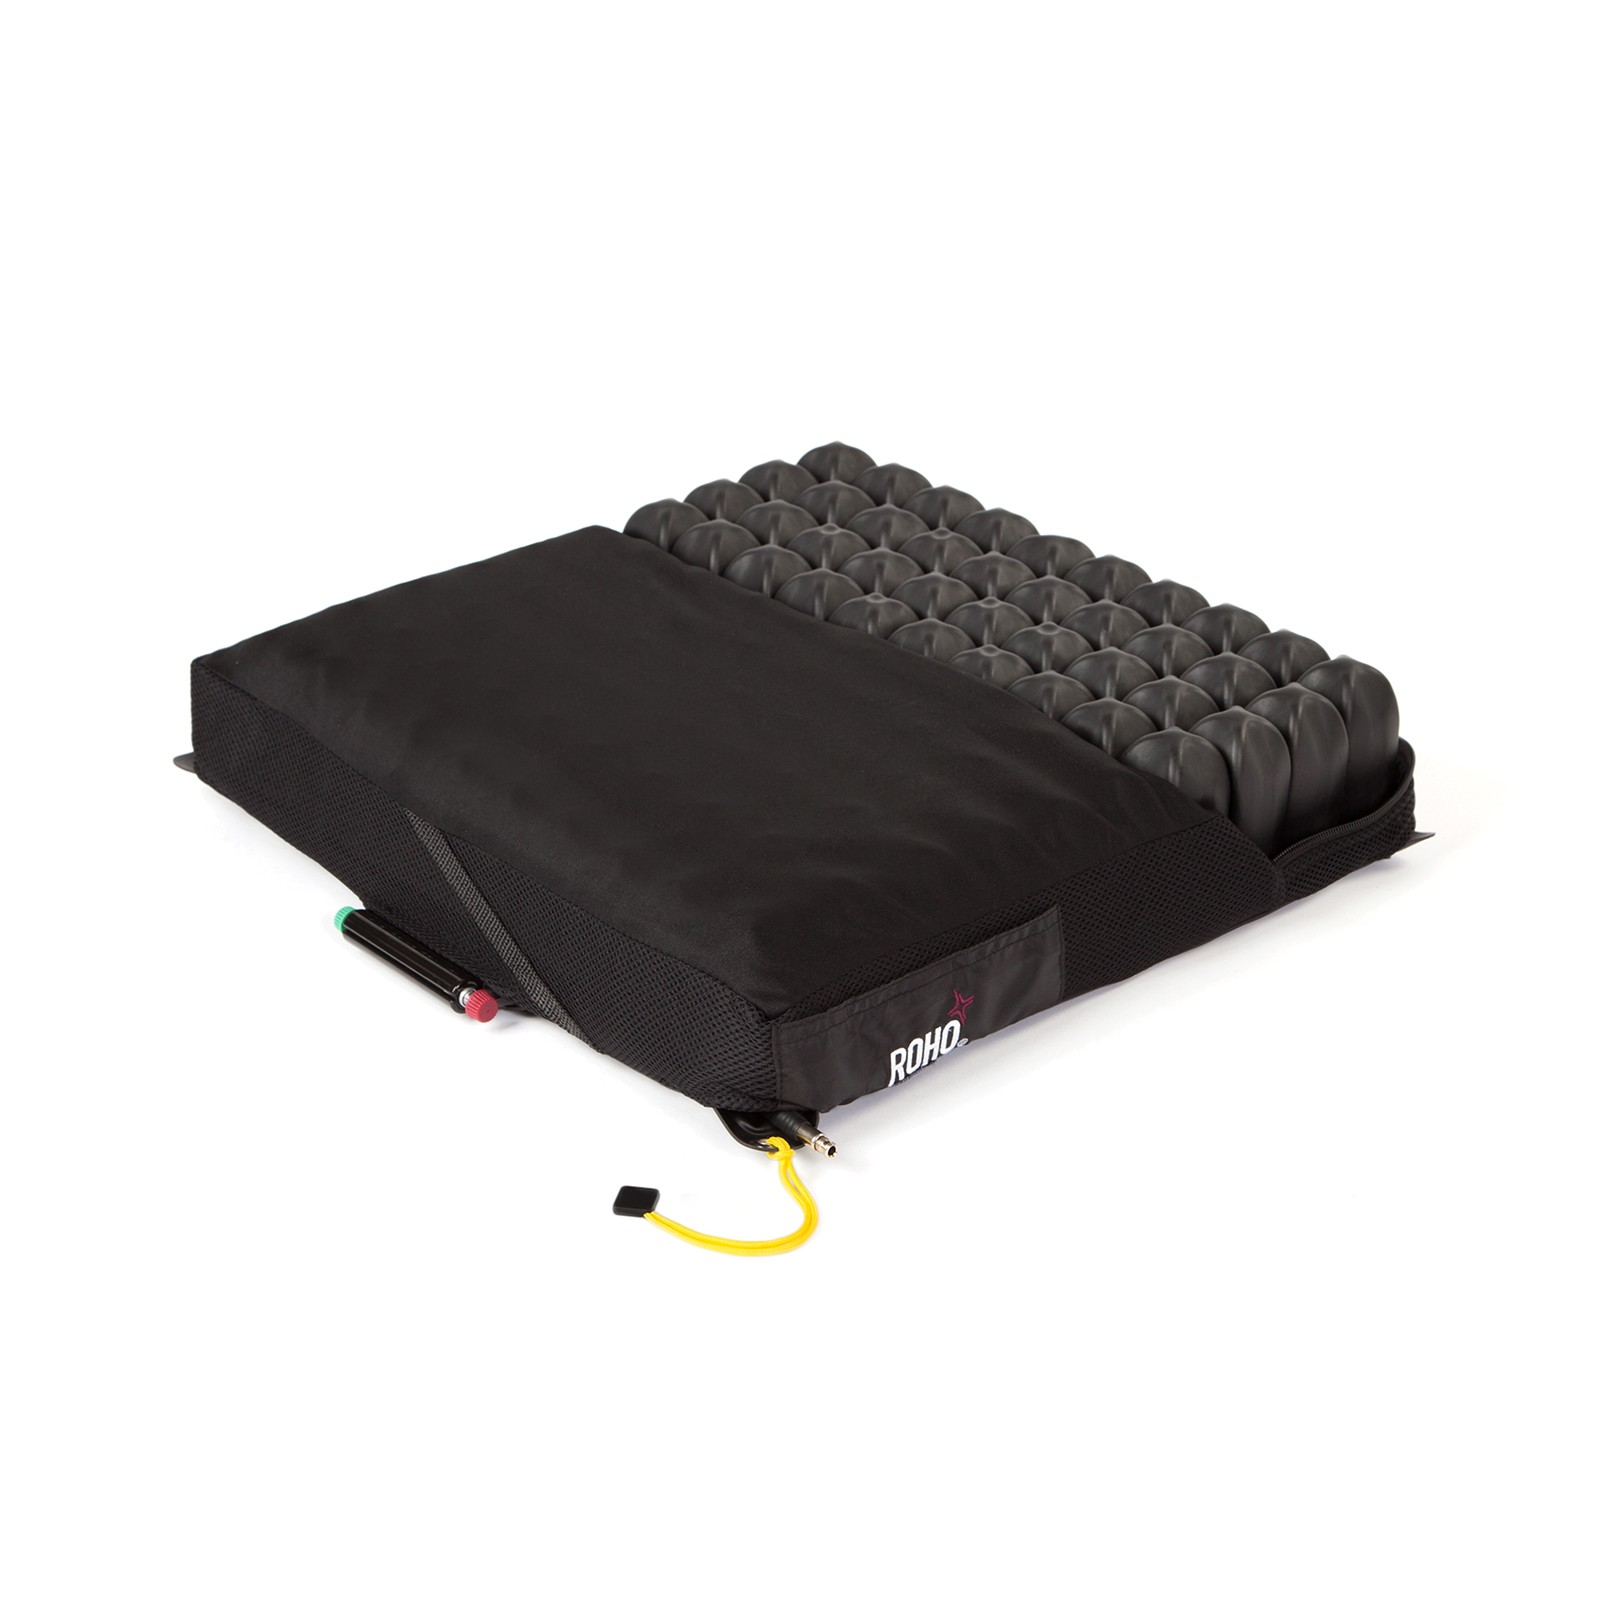 Roho 174 Quadtro Select 174 High Profile 174 Wheelchair Cushion